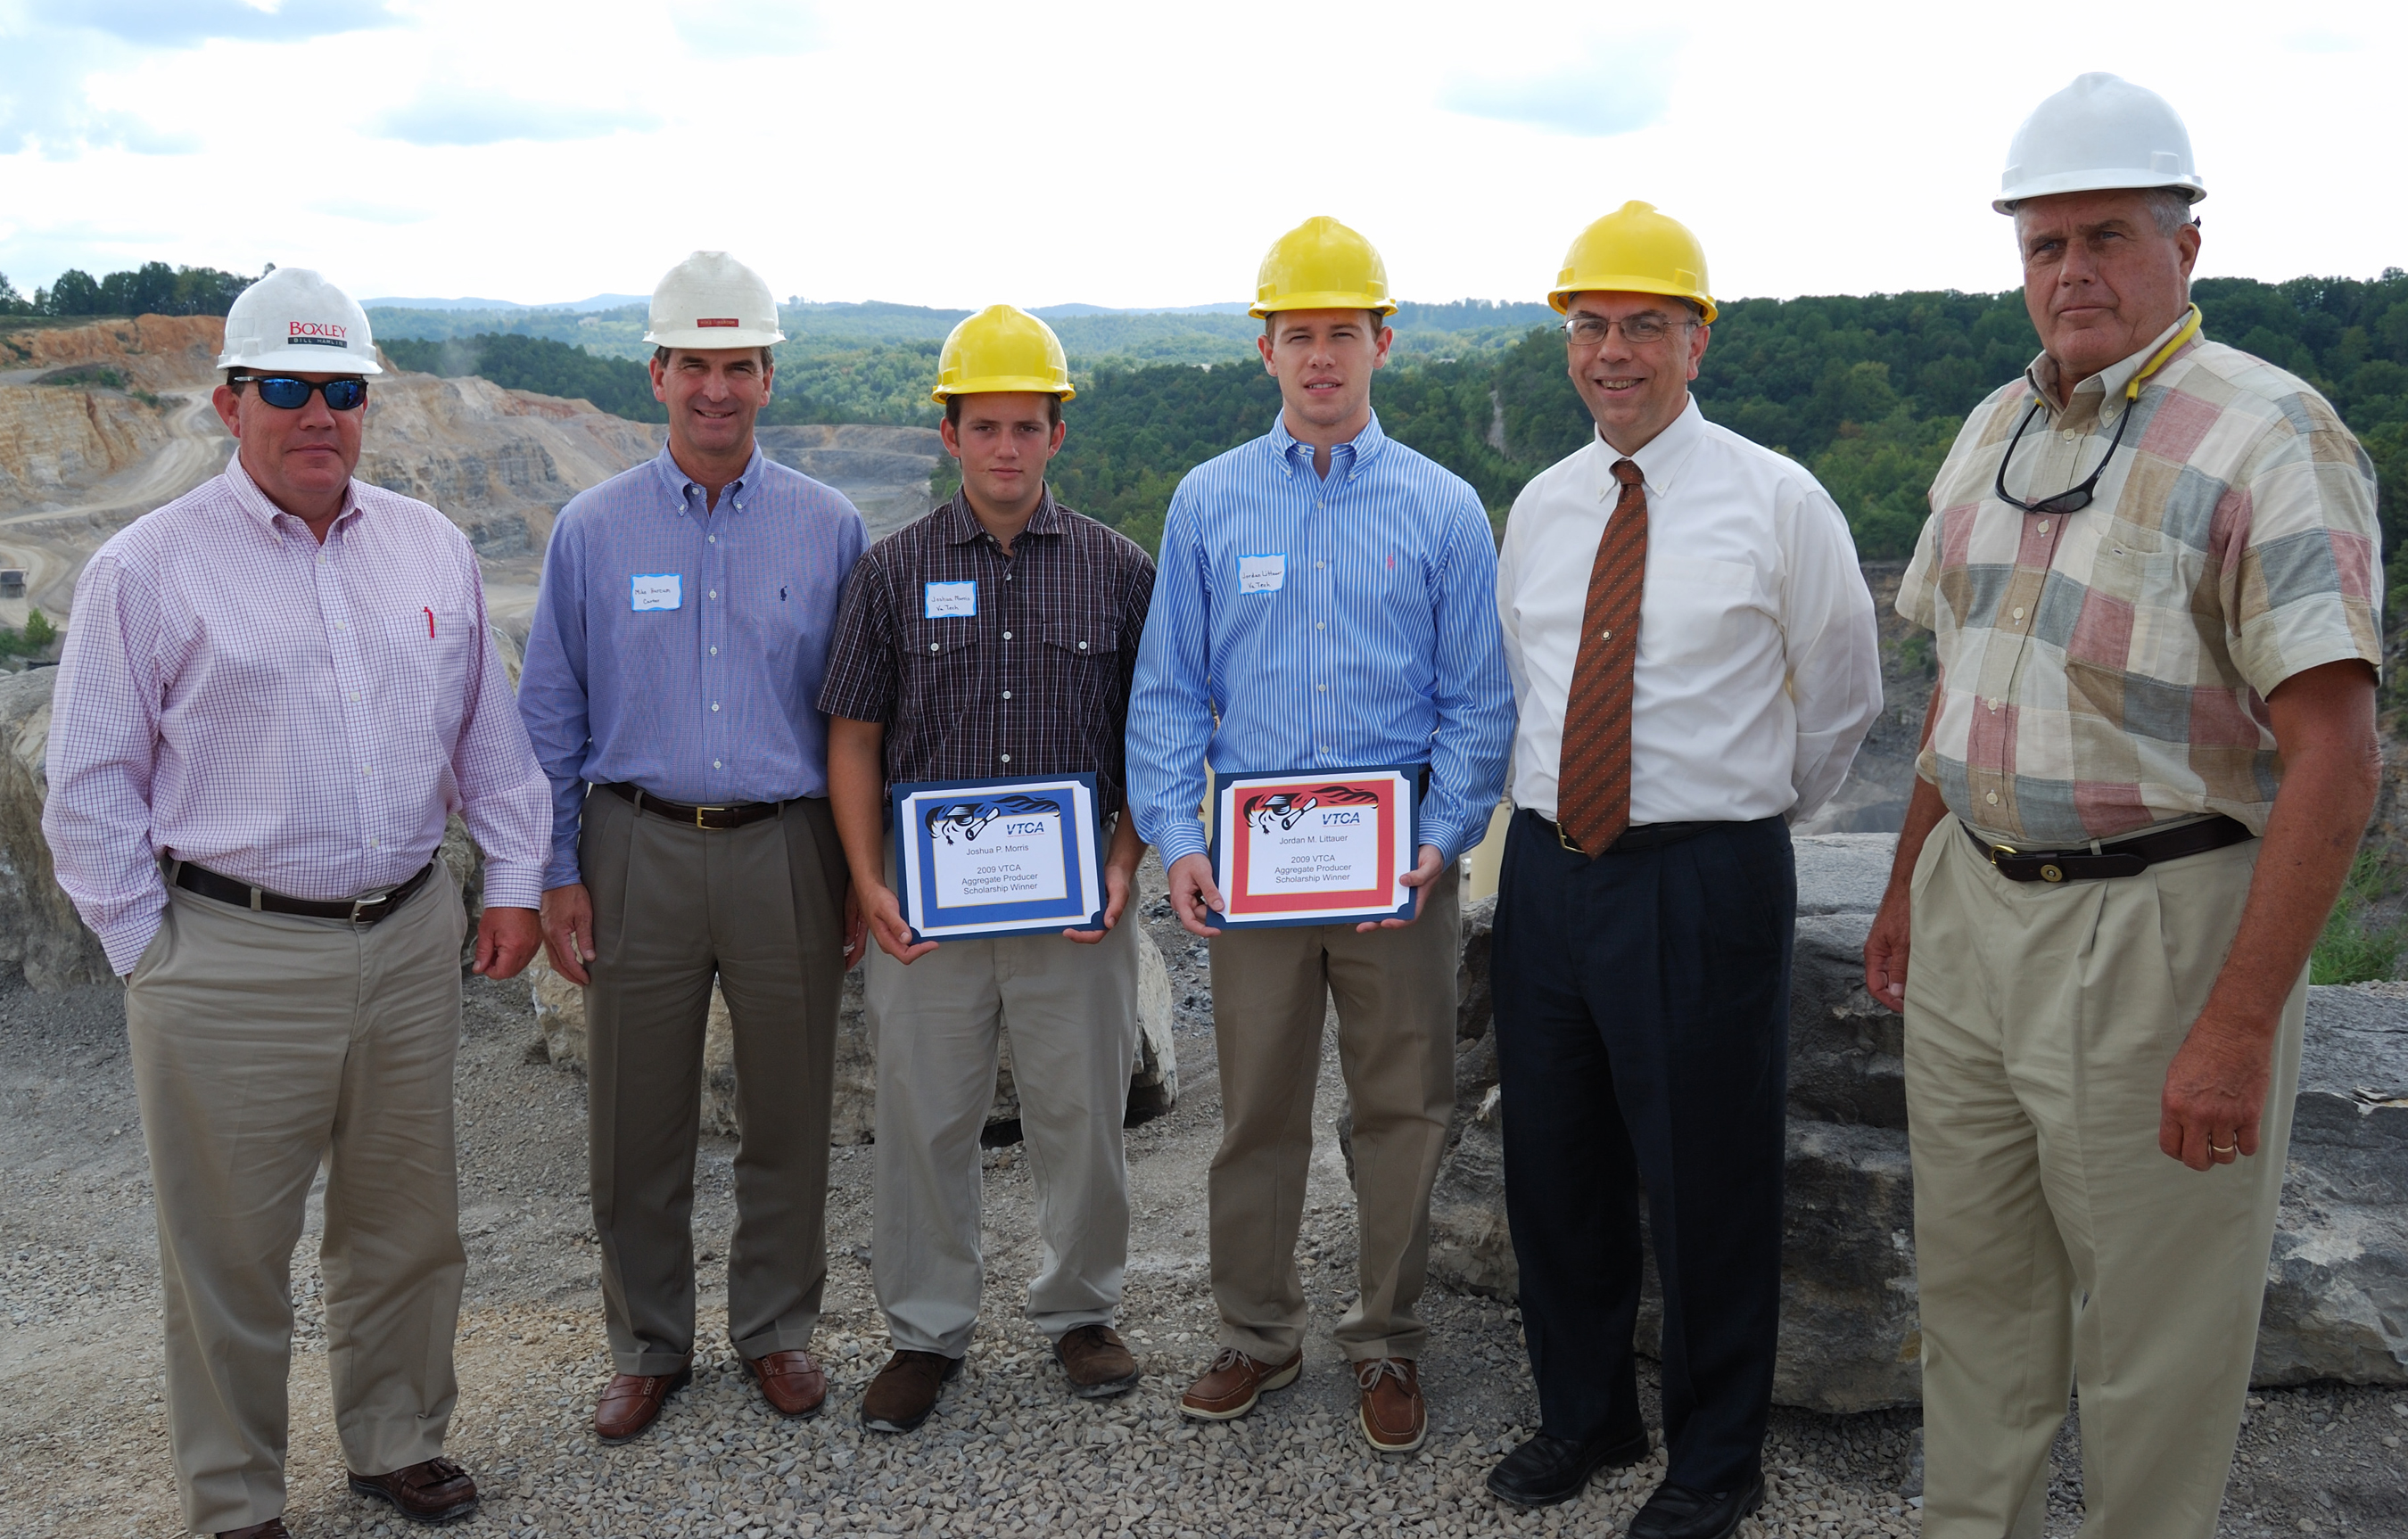 (Left to right)Bill Hamlin, Boxley Materials Co.; Mike Harcum, Carter Machinery; Joshua Morris; Jordan Littauer; Greg Adel, professor and mining and minerals engineering department chairman at Virginia Tech; and M.J. O'Brien Jr., president of Salem Stone. Hamlin, Harcum and O'Brien are members of the Virginia Transportation Construction Alliance, which awarded Morris and Littauer scholarships.